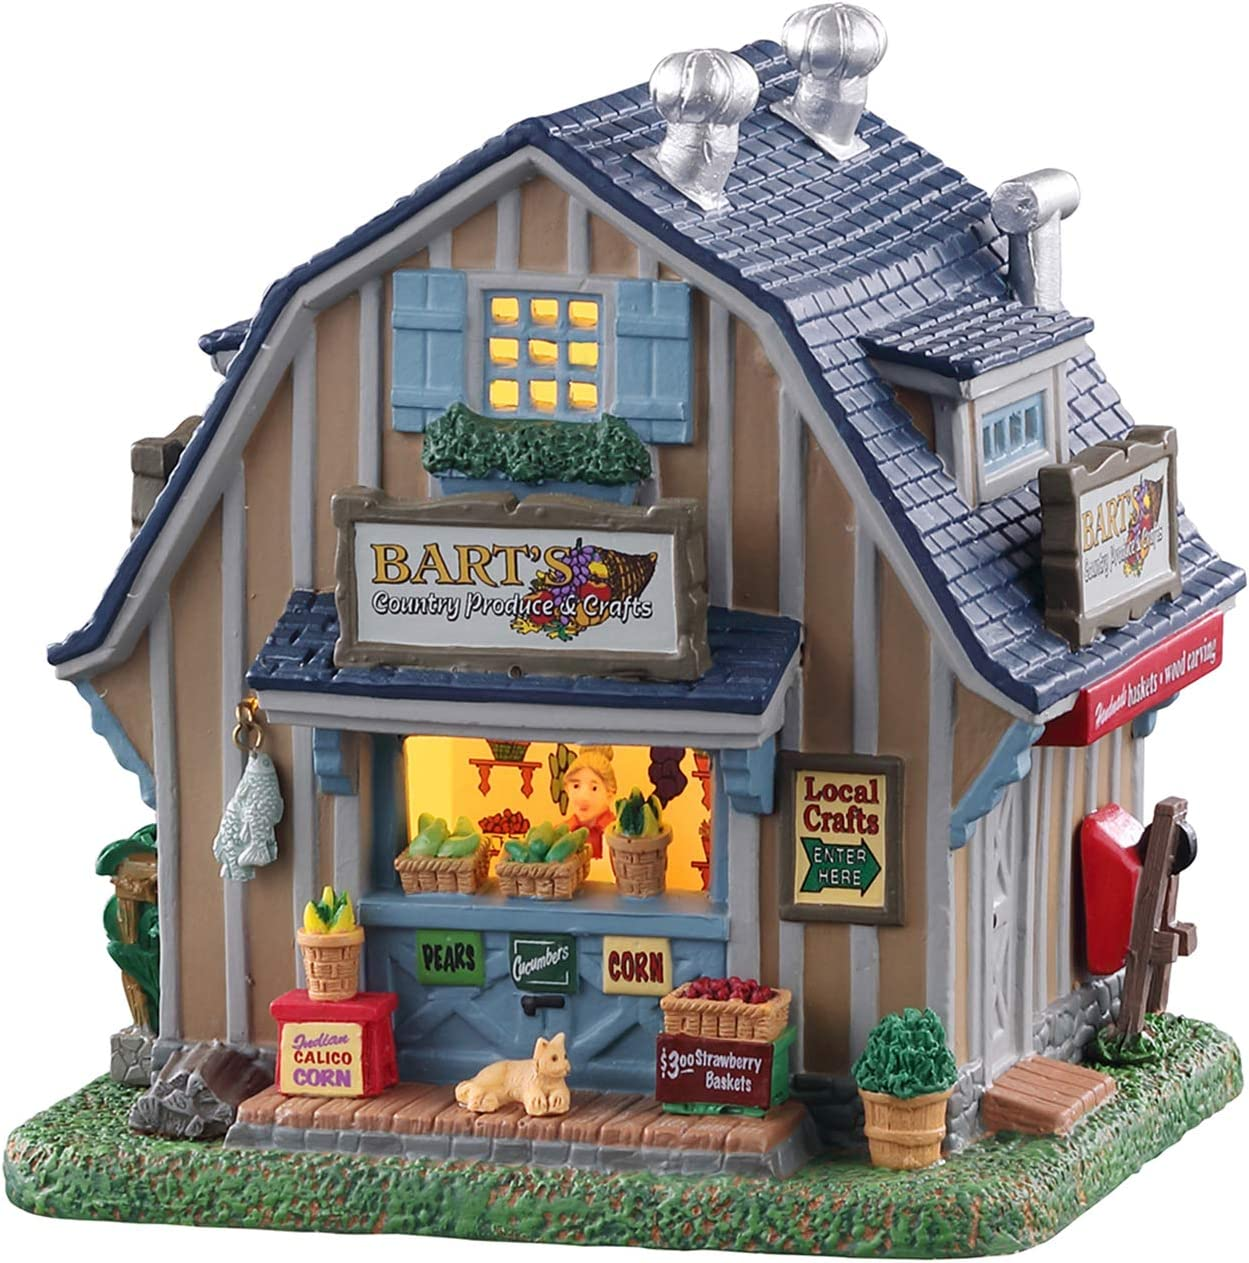 Lemax Village Collection Barts Country Produce /& Crafts #05663